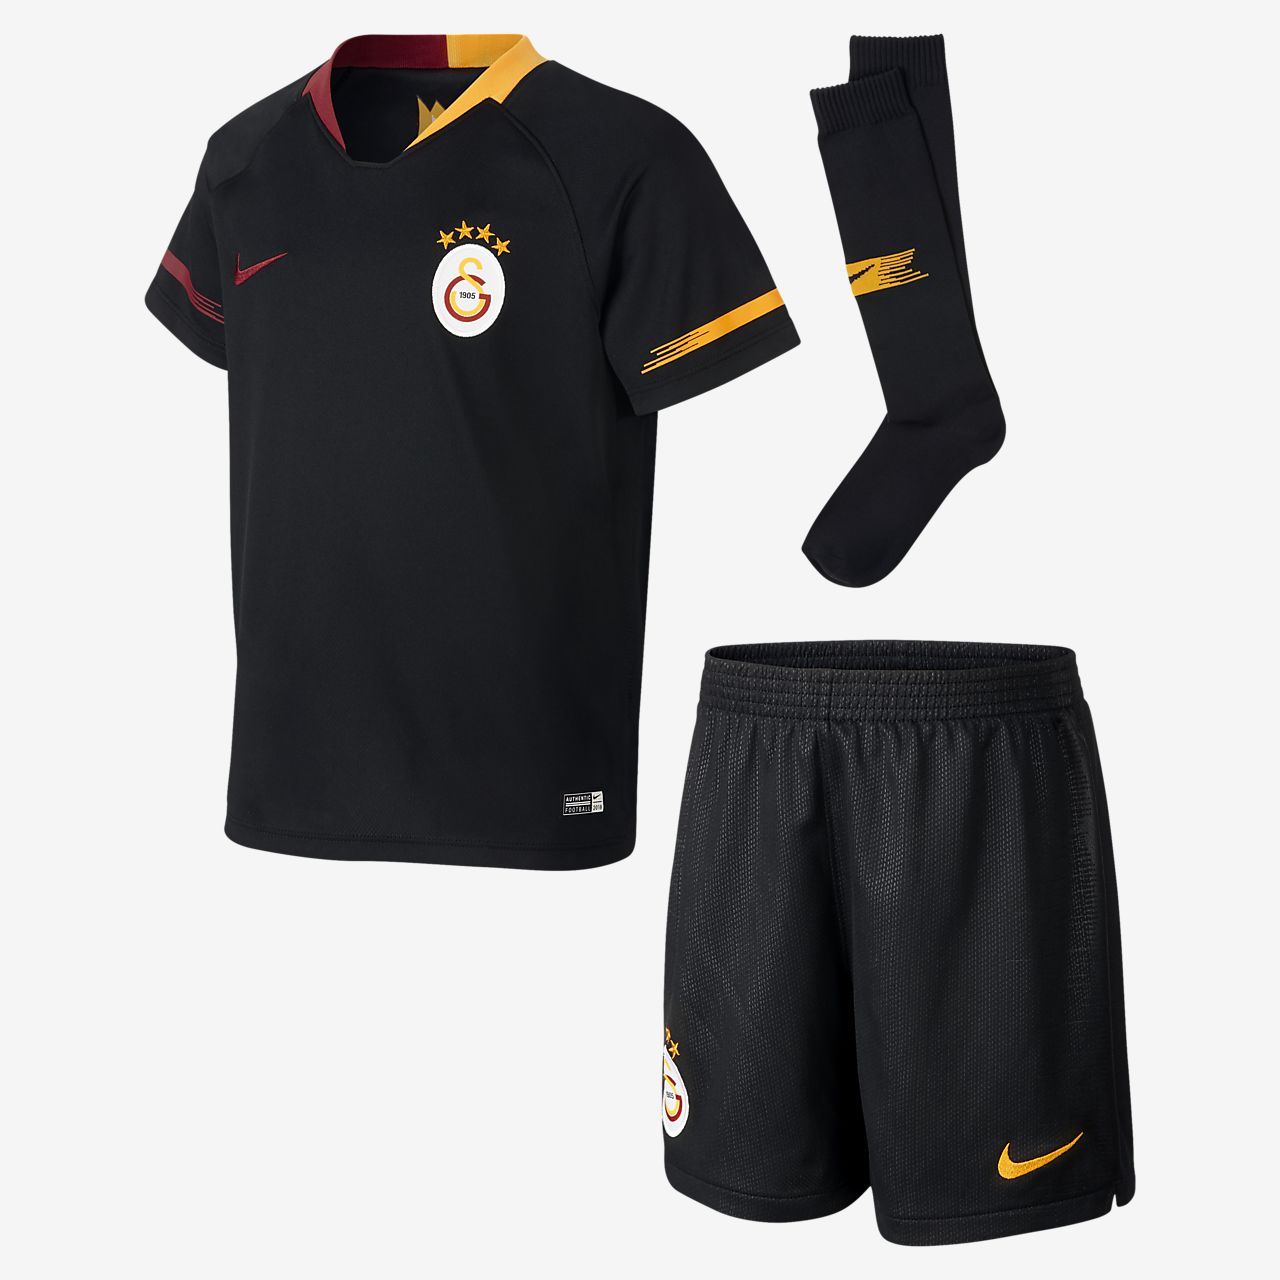 2018/19 Galatasaray S.K. Stadium Away Younger Kids' Football Kit